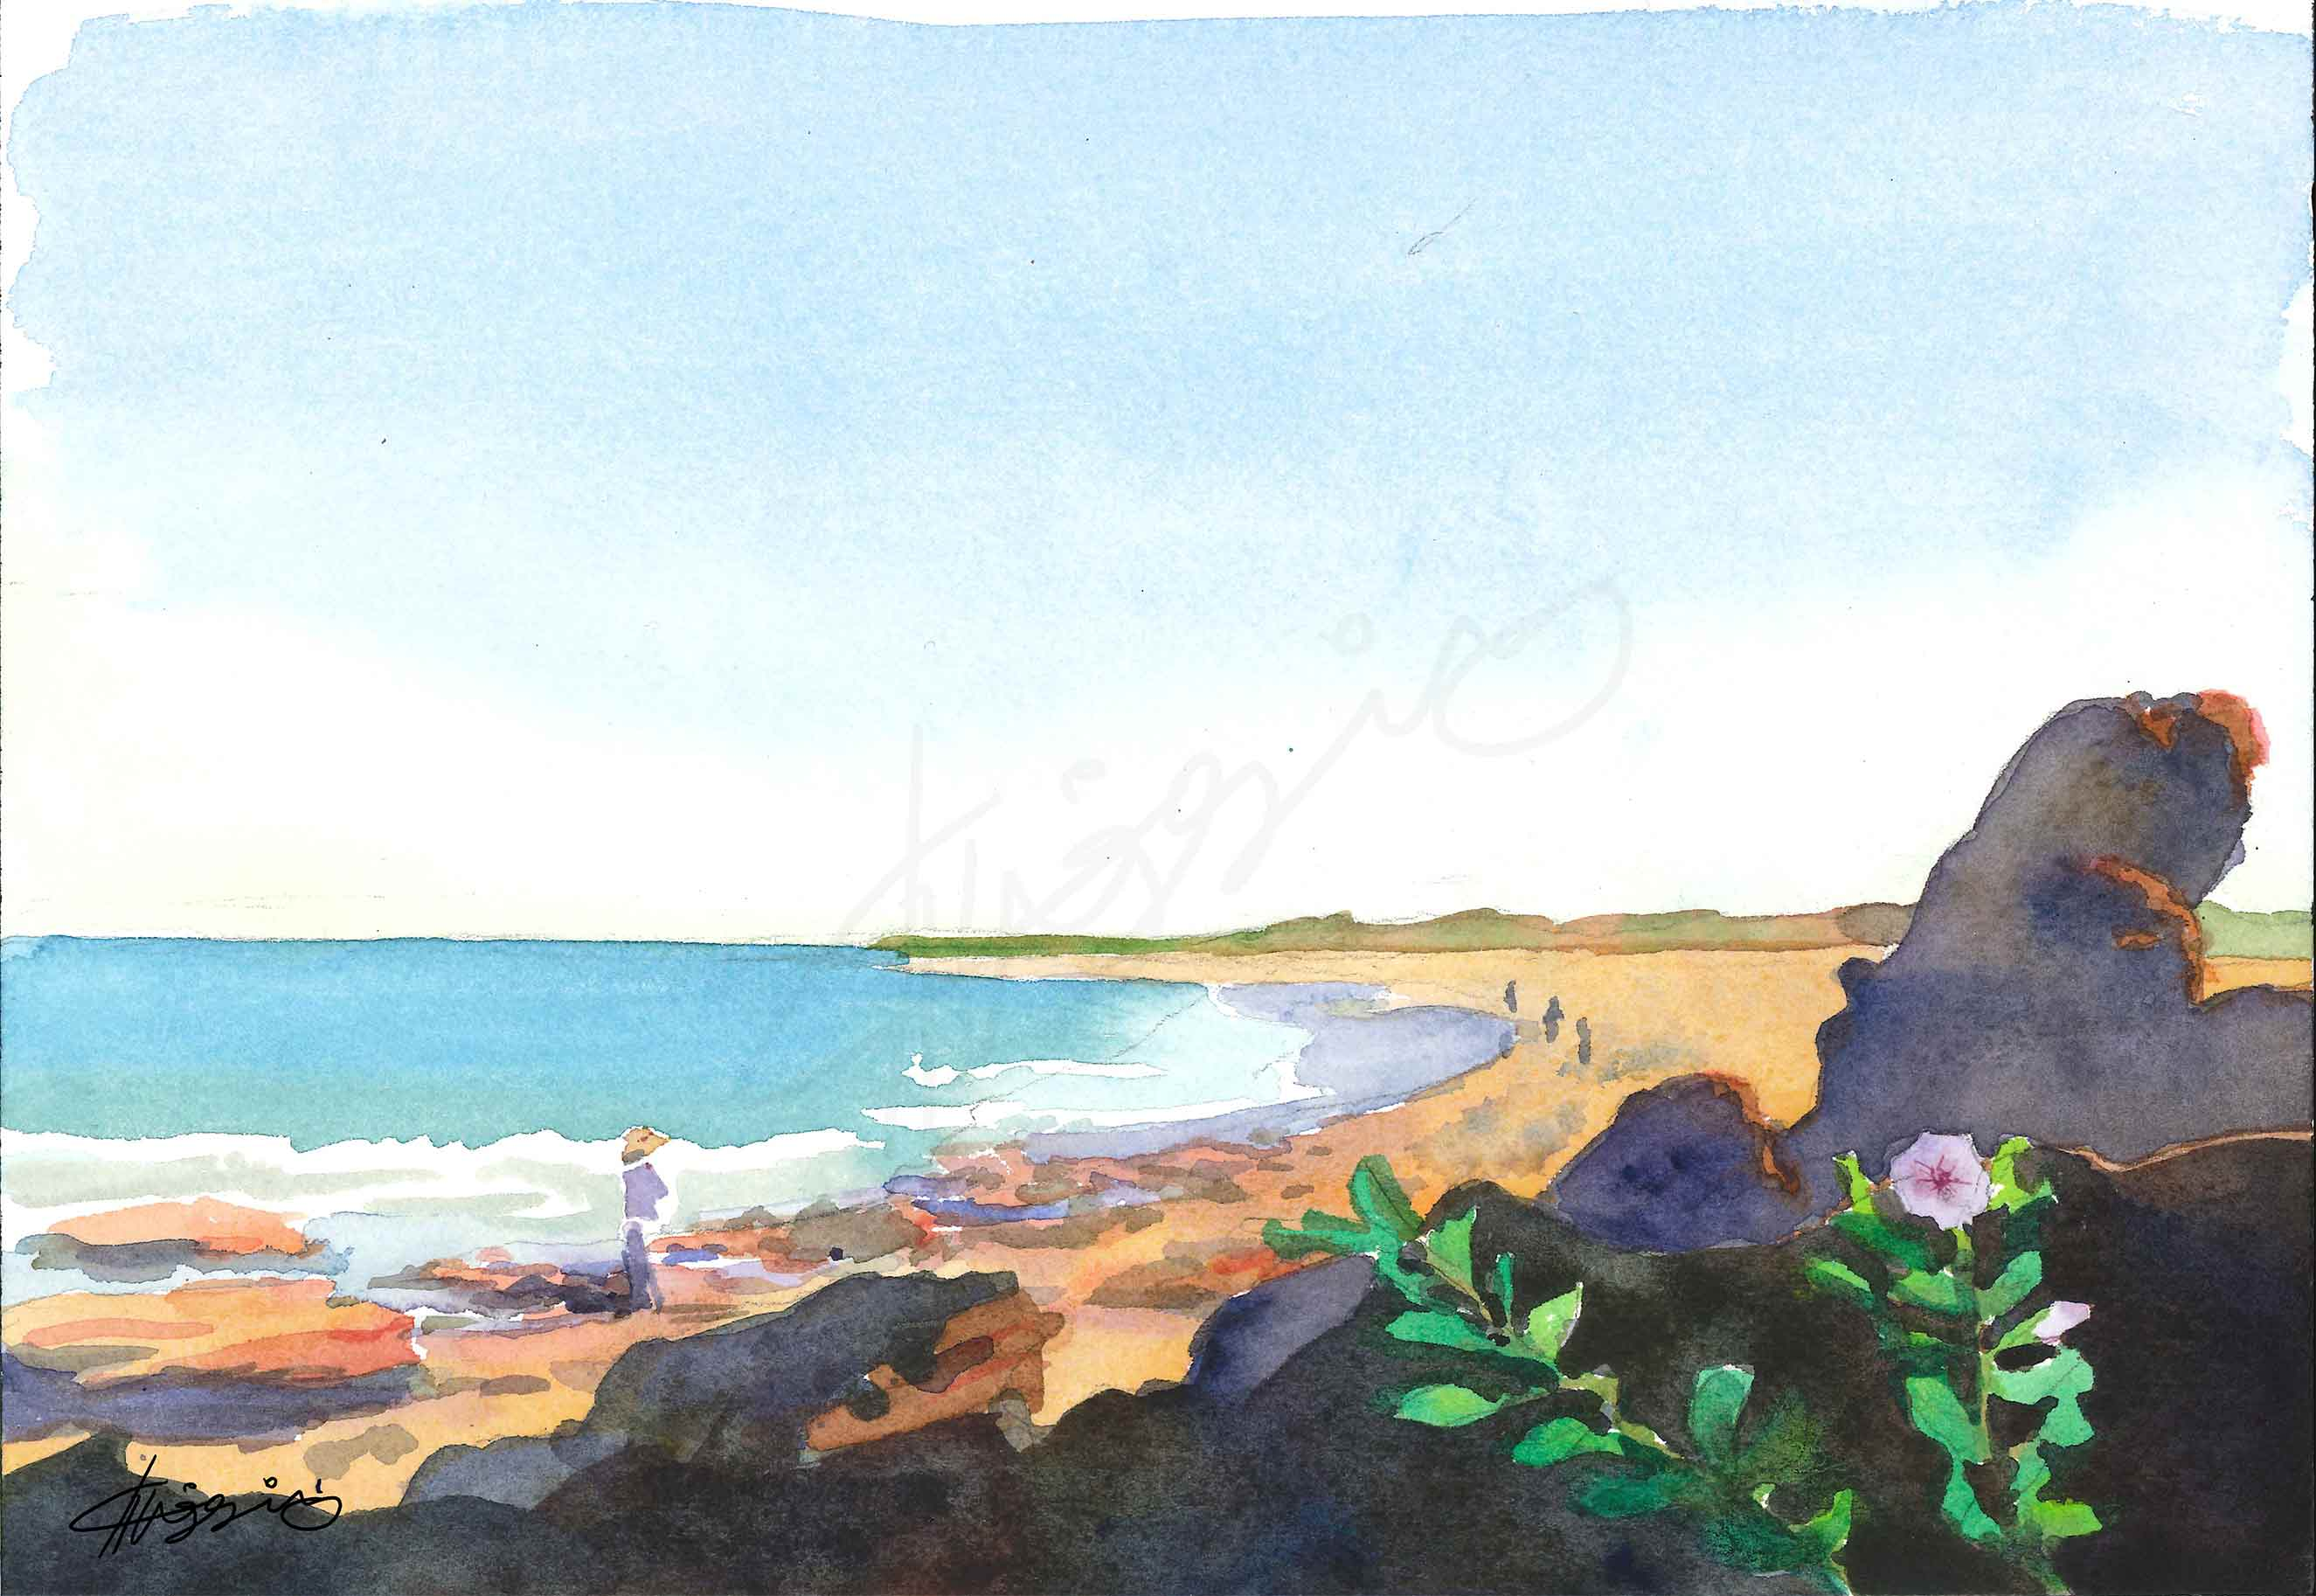 Watercolor painting of people walking along Cable Beach in Broome, Australia, in the morning